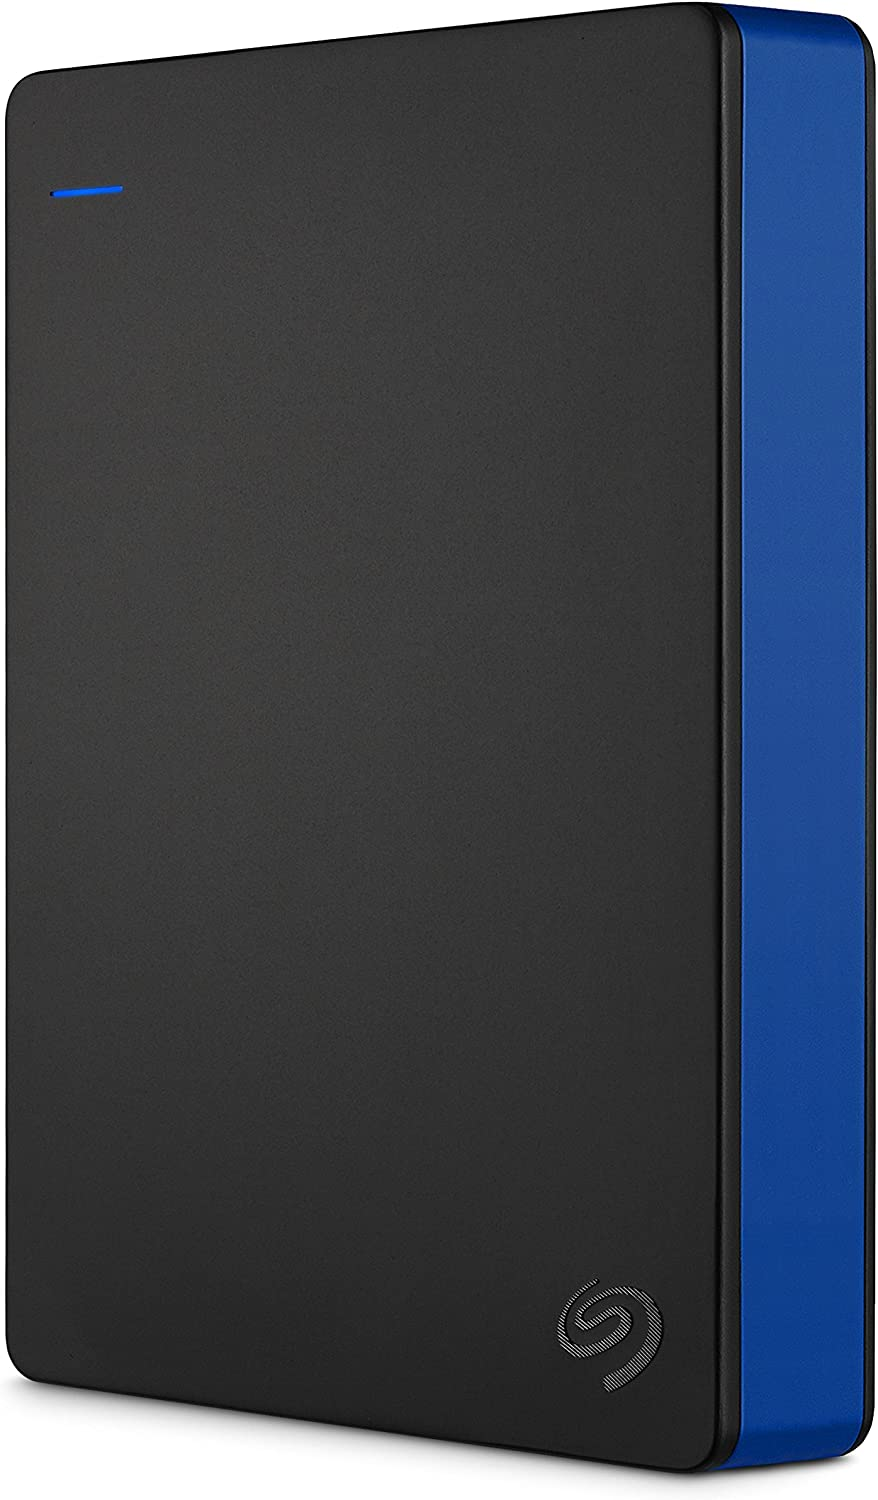 Seagate STGD4000400 Game Drive 4TB External Hard Drive Portable HDD - Compatible With PS4